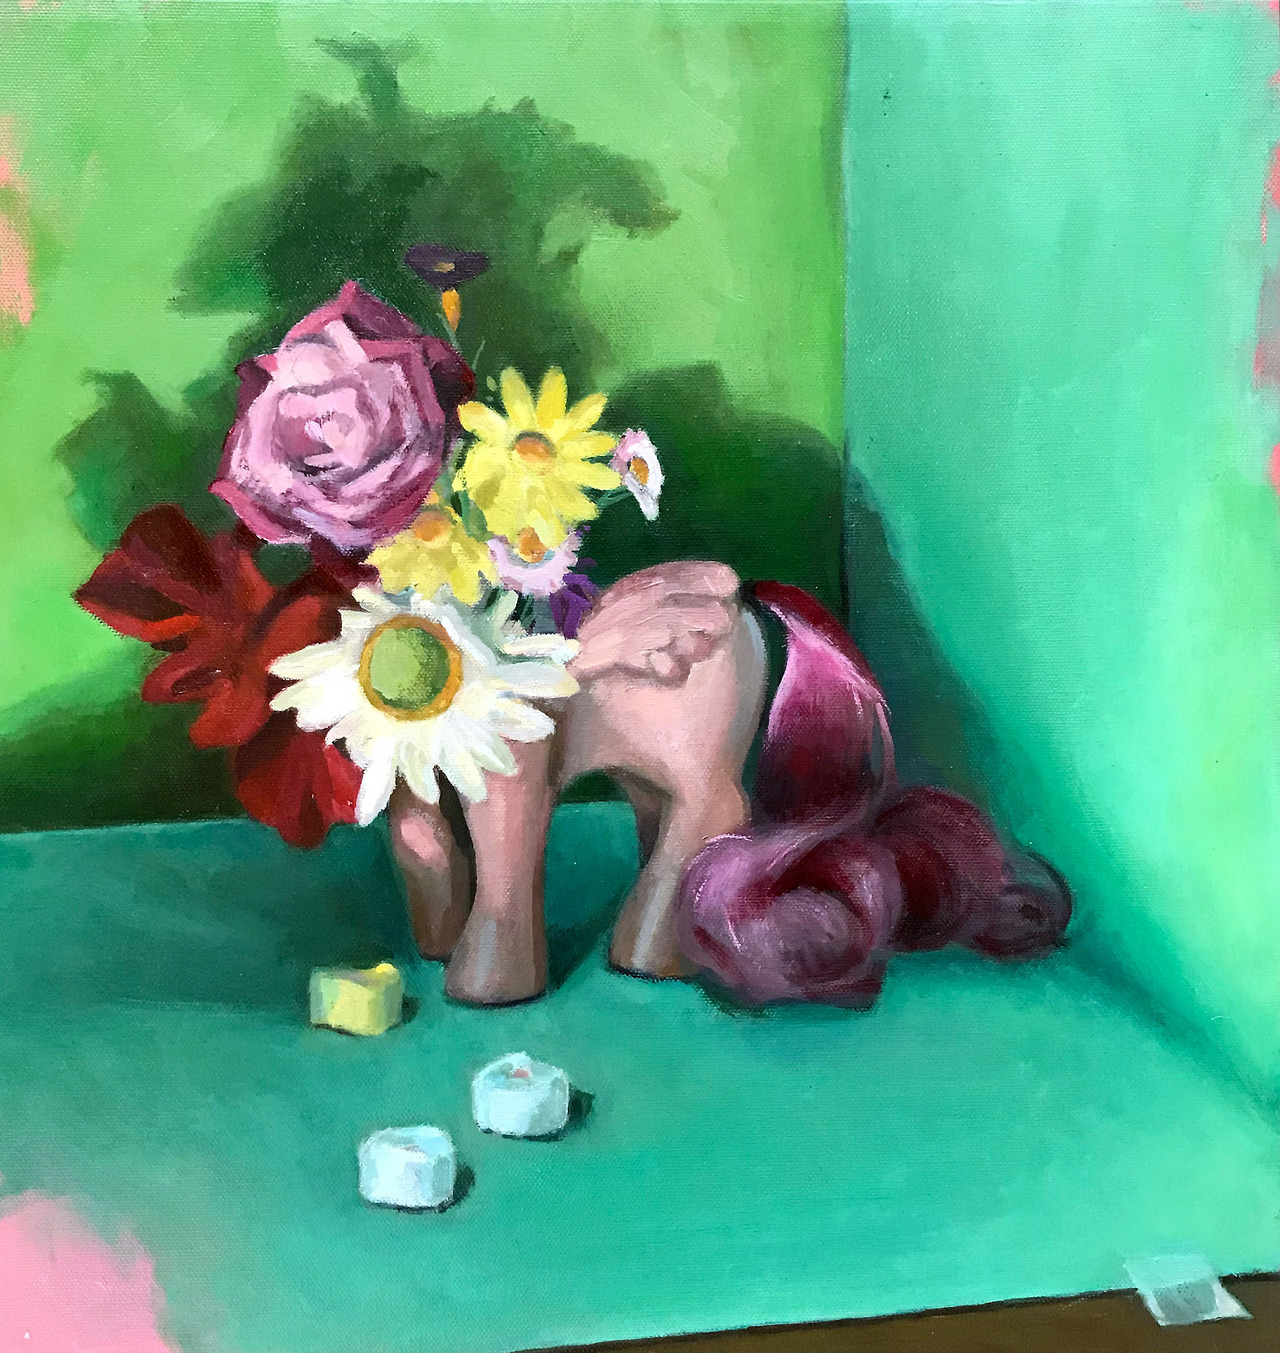 Broken Pony Bouquet oil on canvas, 16 x 16 inches By artist Elizabeth Levesque Lizzelizzel.com - Personal Art Blog Tumblr — Immediately post your art to a topic and get feedback. Join our new community, EatSleepDraw Studio, today!